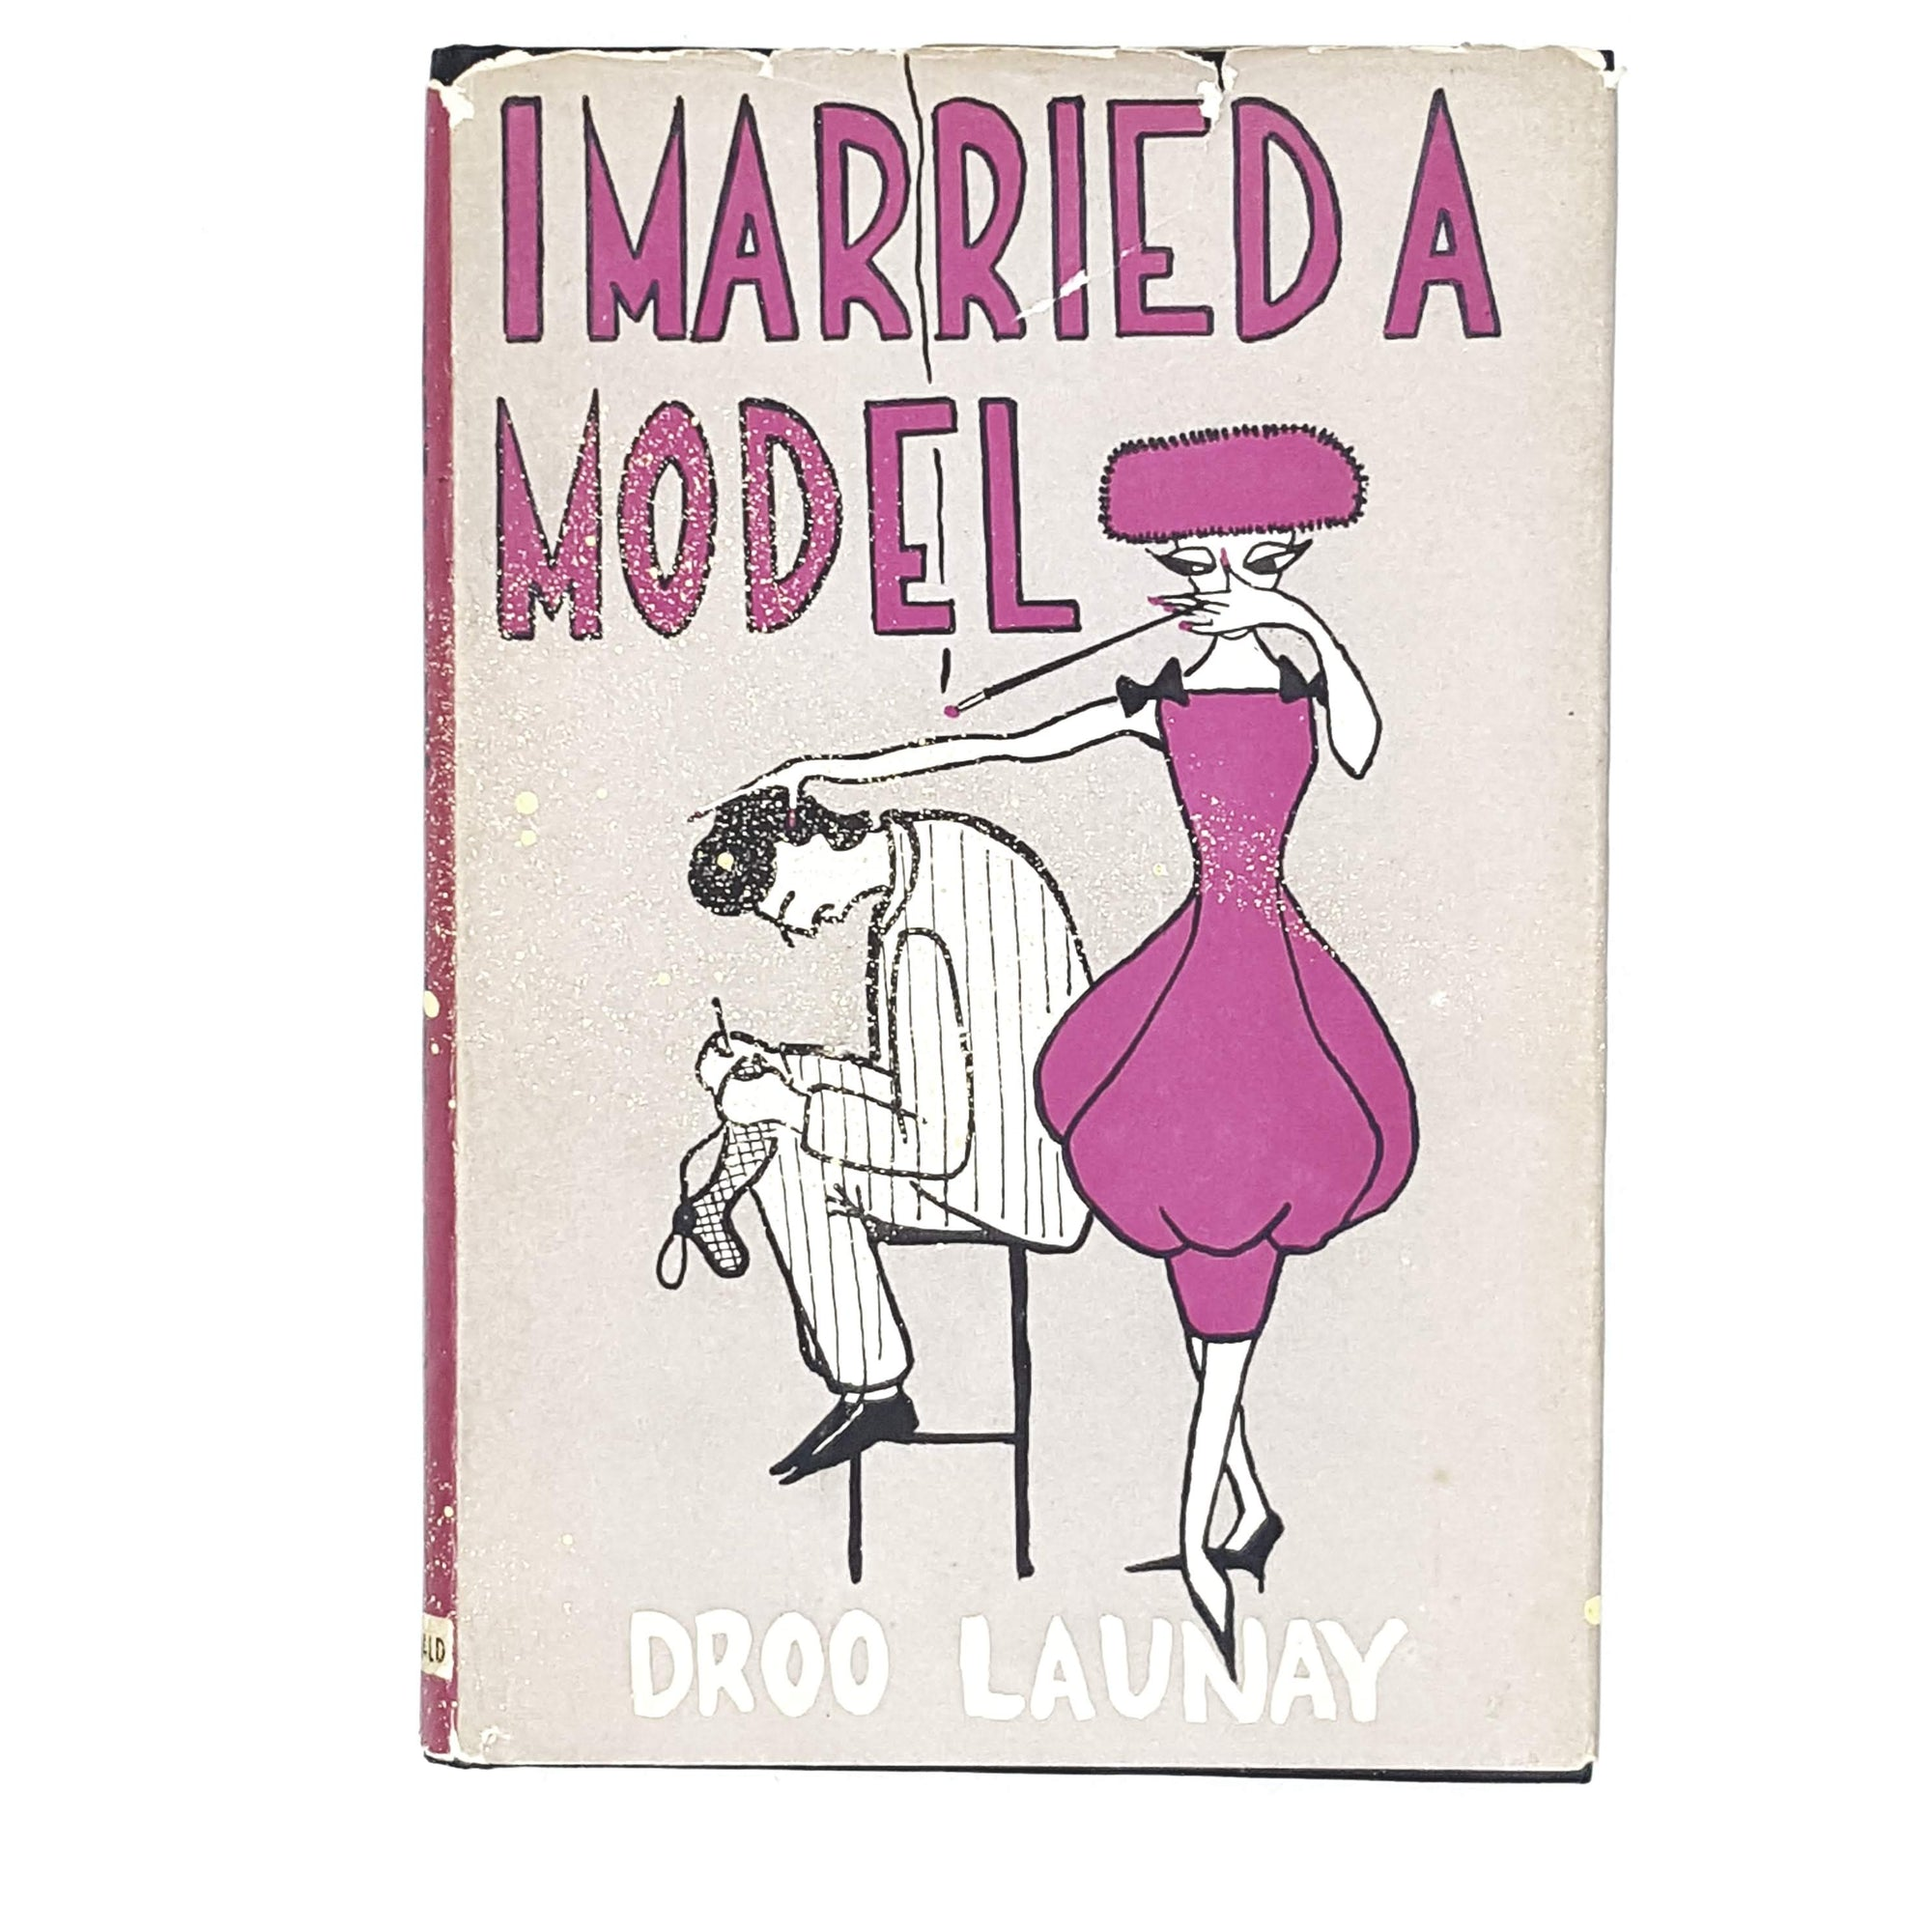 Vintage Humour I Married a Model by Droo Launay 1957